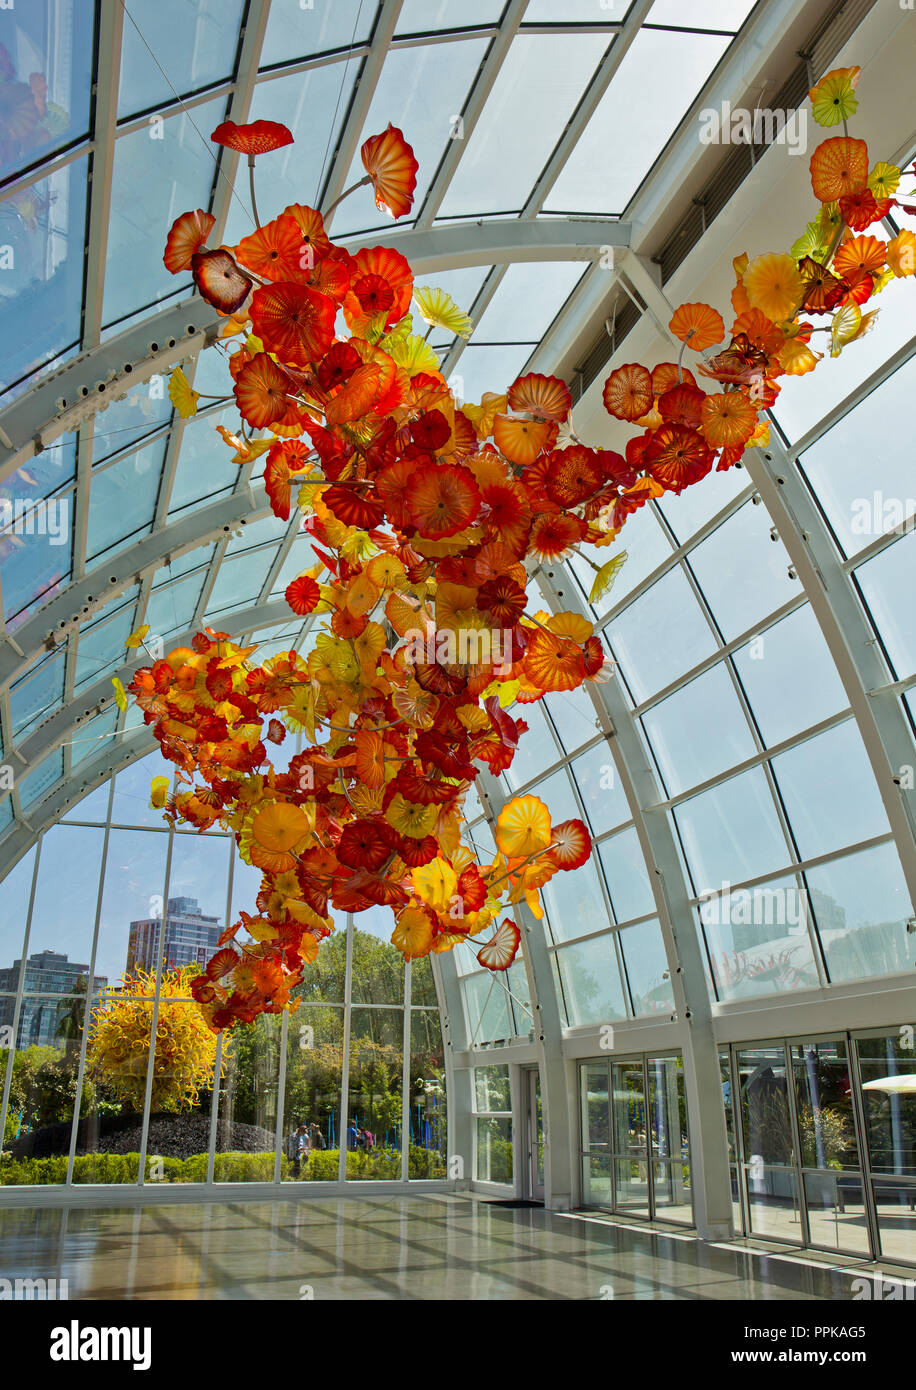 Dale Chihuly, hand blown glass, Seattle, Washington State, USA - Stock Image